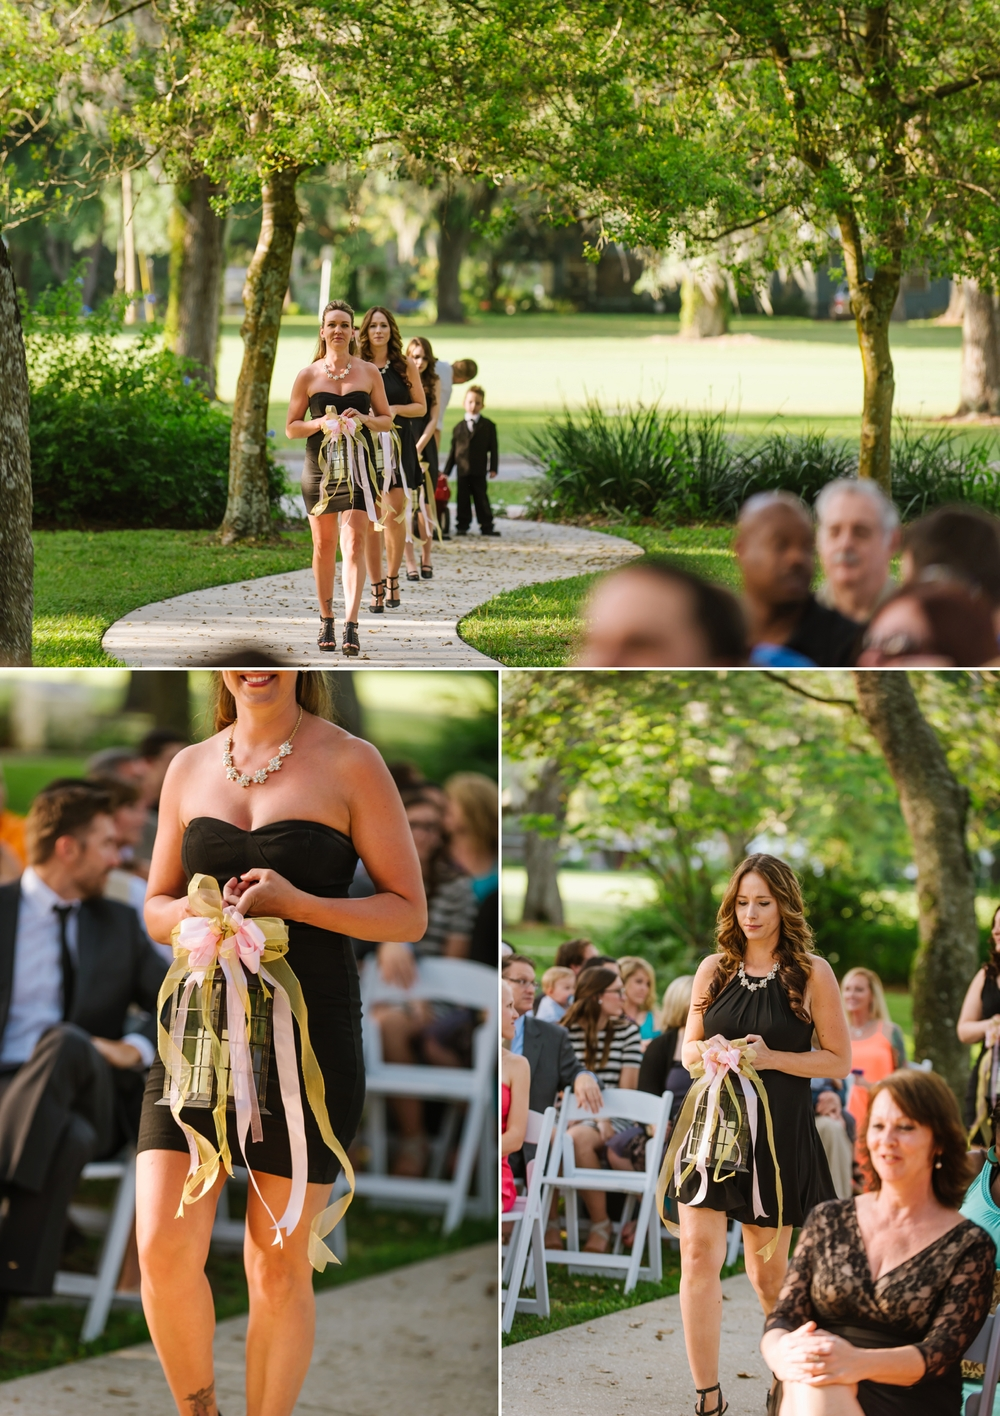 ashlee-hamon-photography-tampa-rustic-outdoor-traditional-wedding_0004.jpg